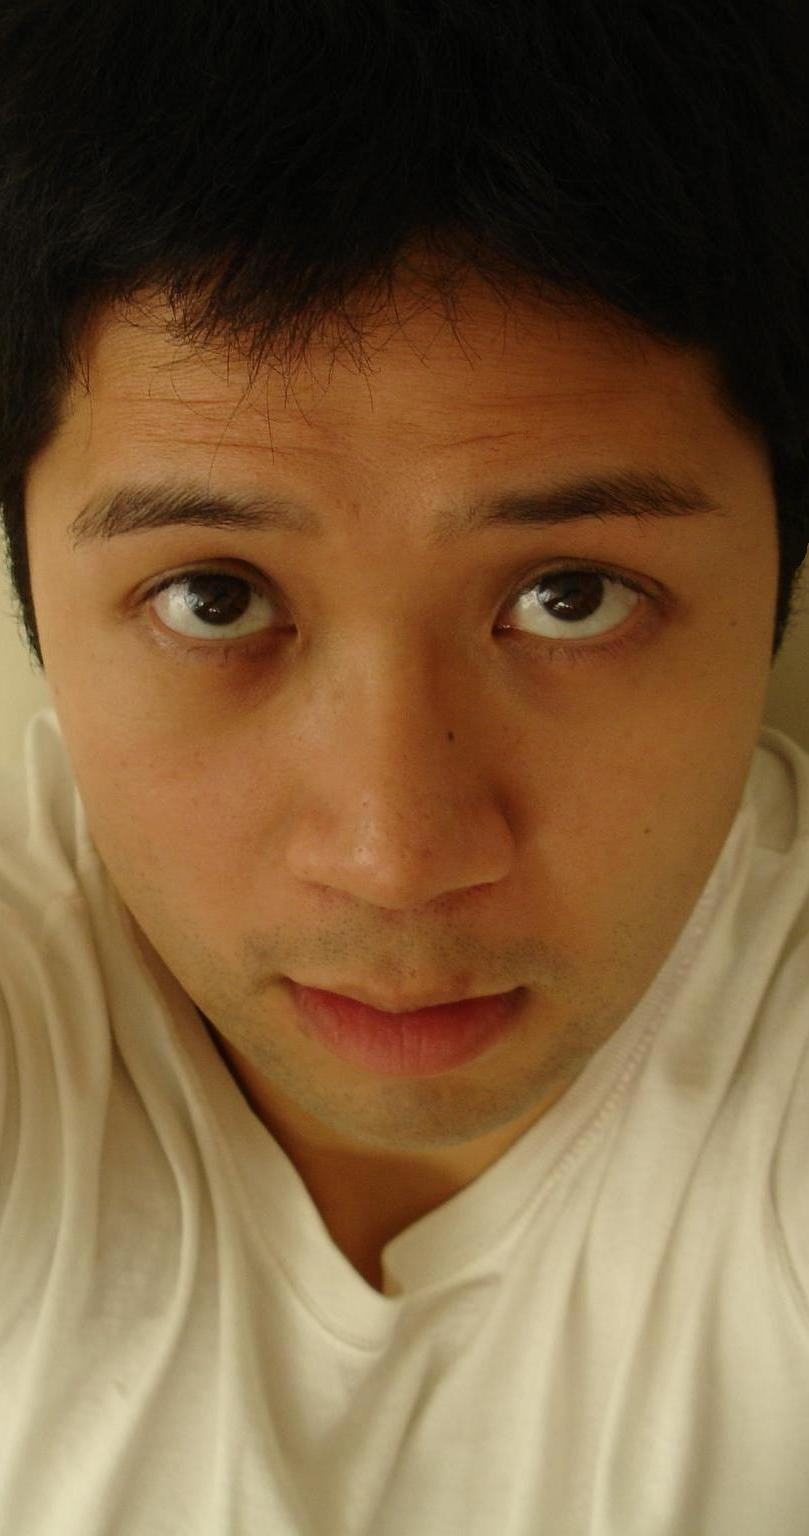 Asian American Men Could Use A Little Self